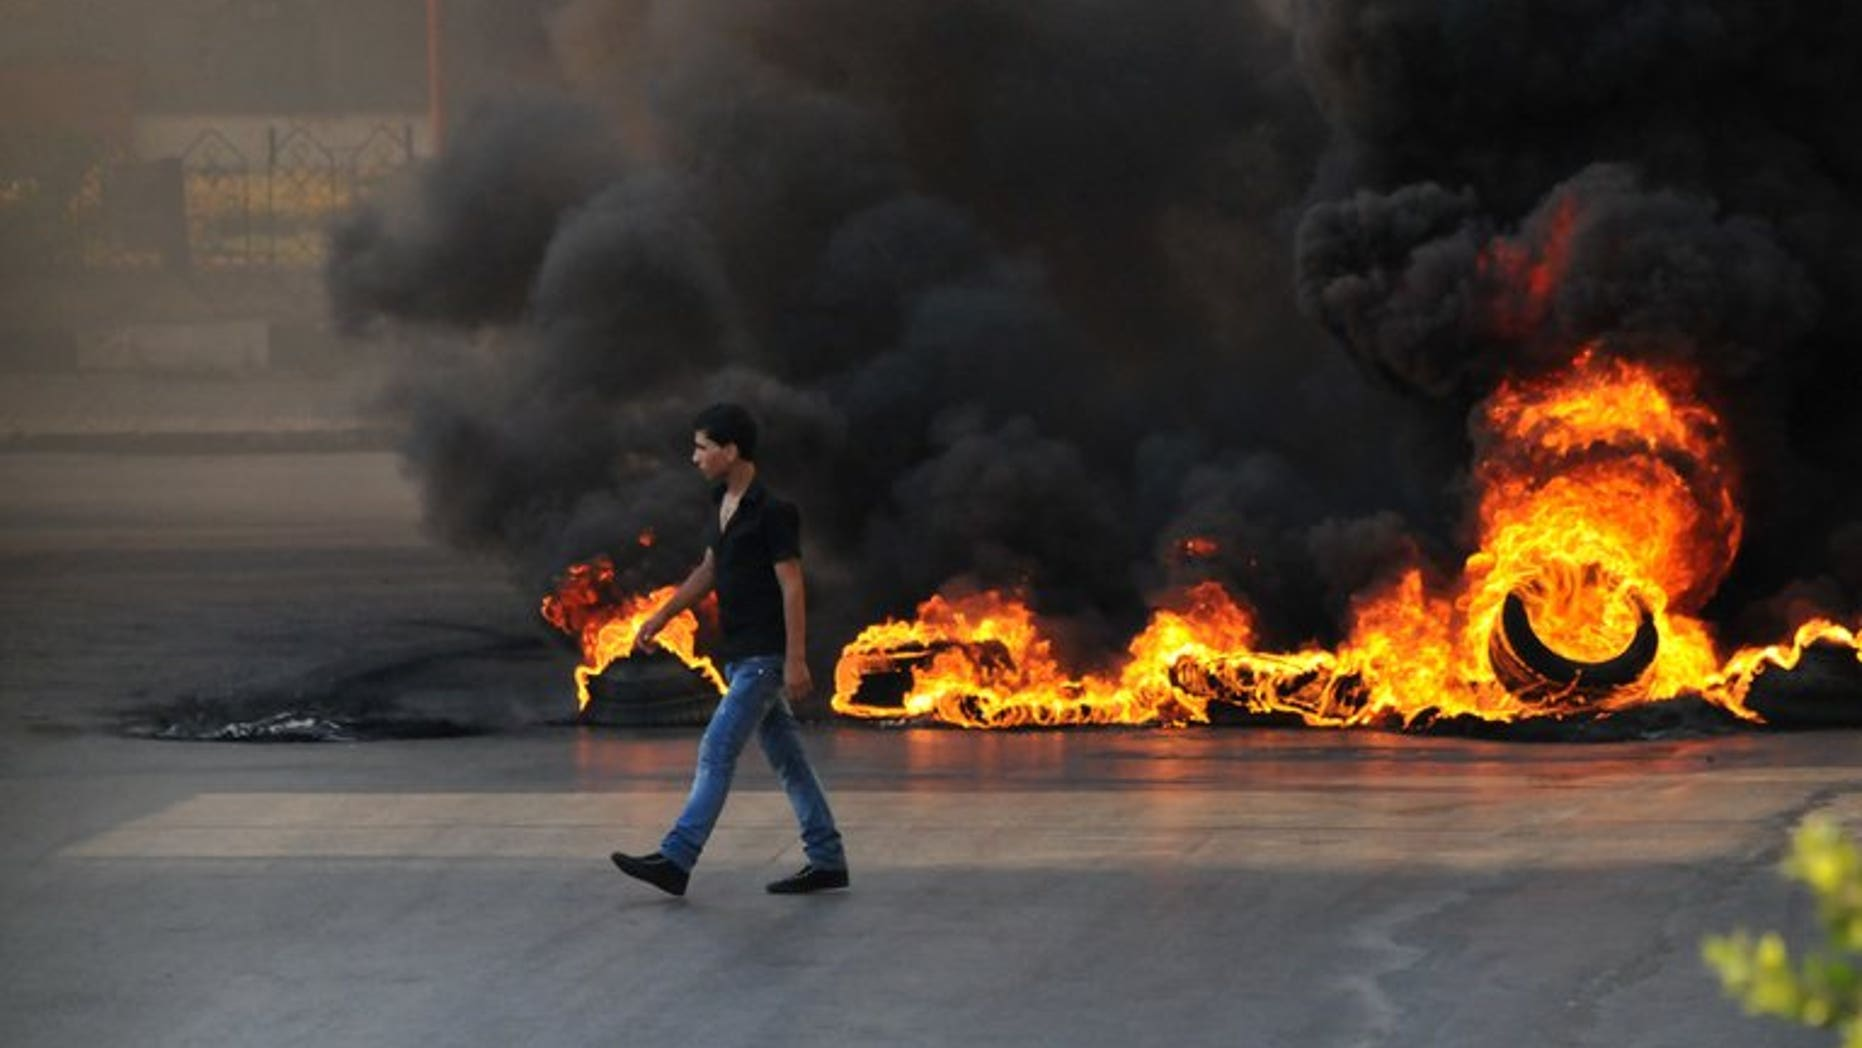 A youth walks past burning tyres in the northern Lebanese city of Tripoli on June 23, 2013 during protests in support of Sunni cleric Sheikh Ahmad al-Assir. At least 12 soldiers have been killed in less than 24 hours of clashes with Assir supporters in Sidon.